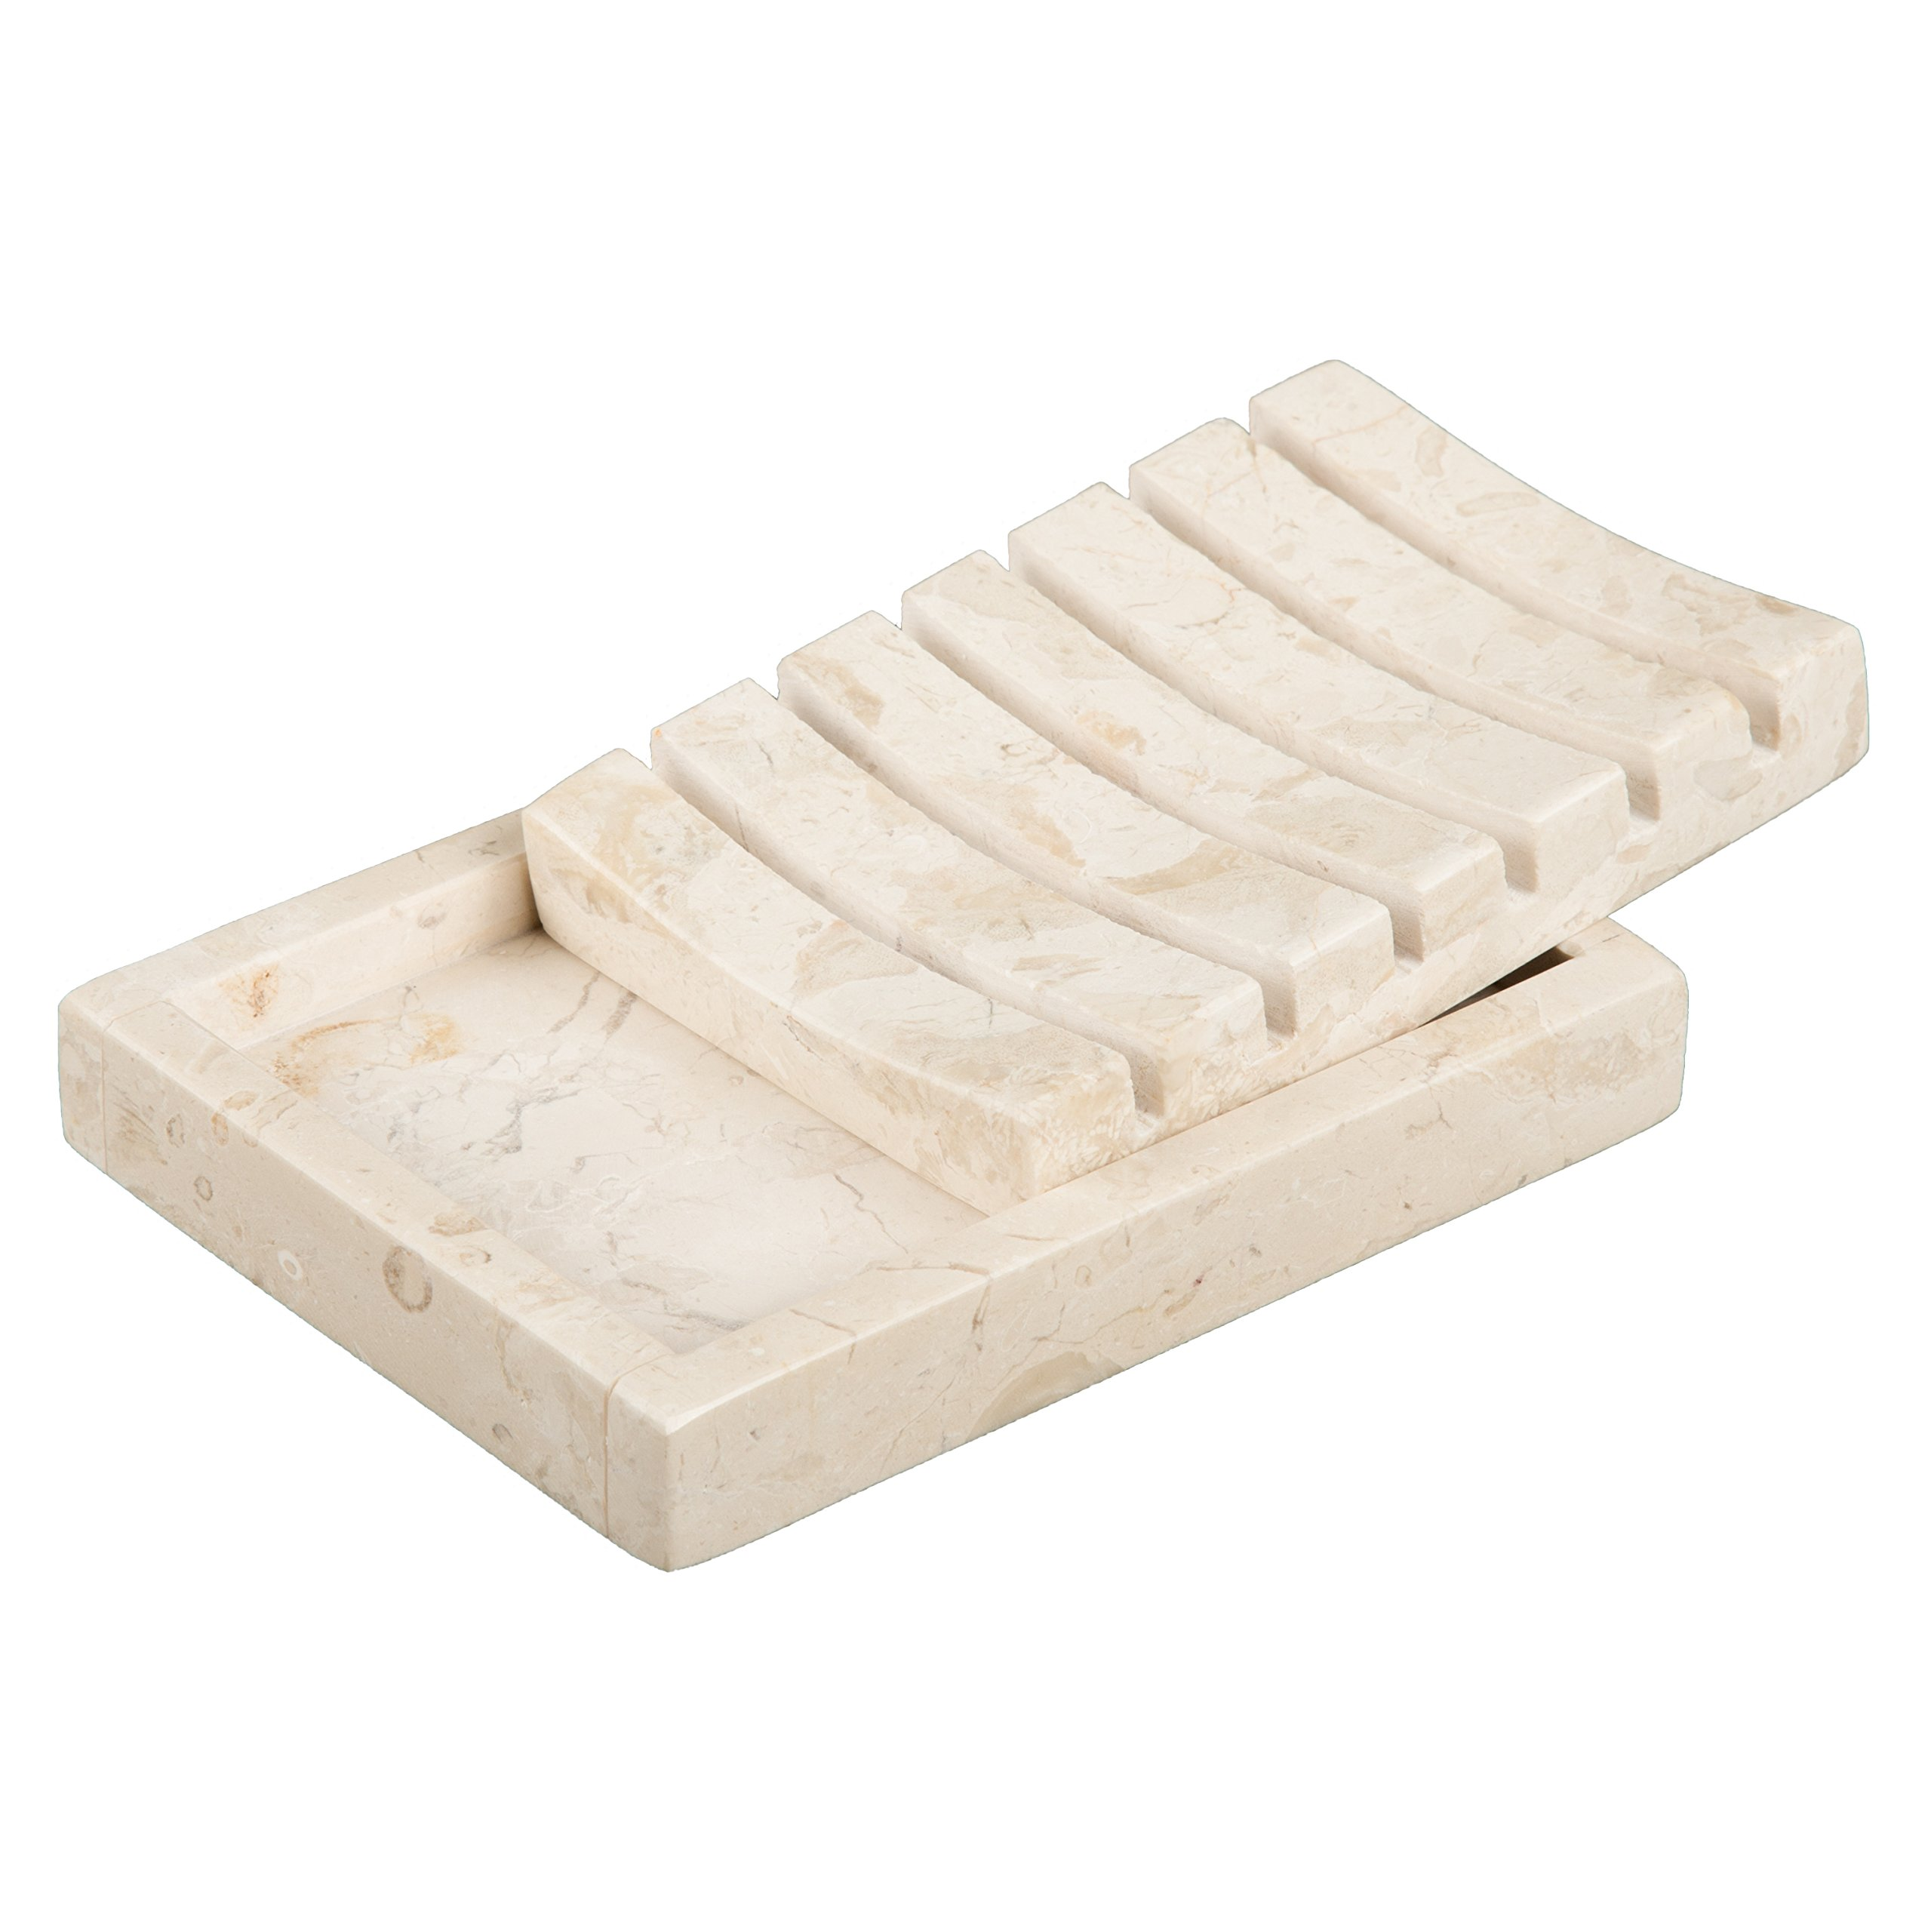 Creative Home Natural Champagne Marble Stone SPA Collection 2 Piece Bar Soap Dish, Soap Tray by Creative Home (Image #4)